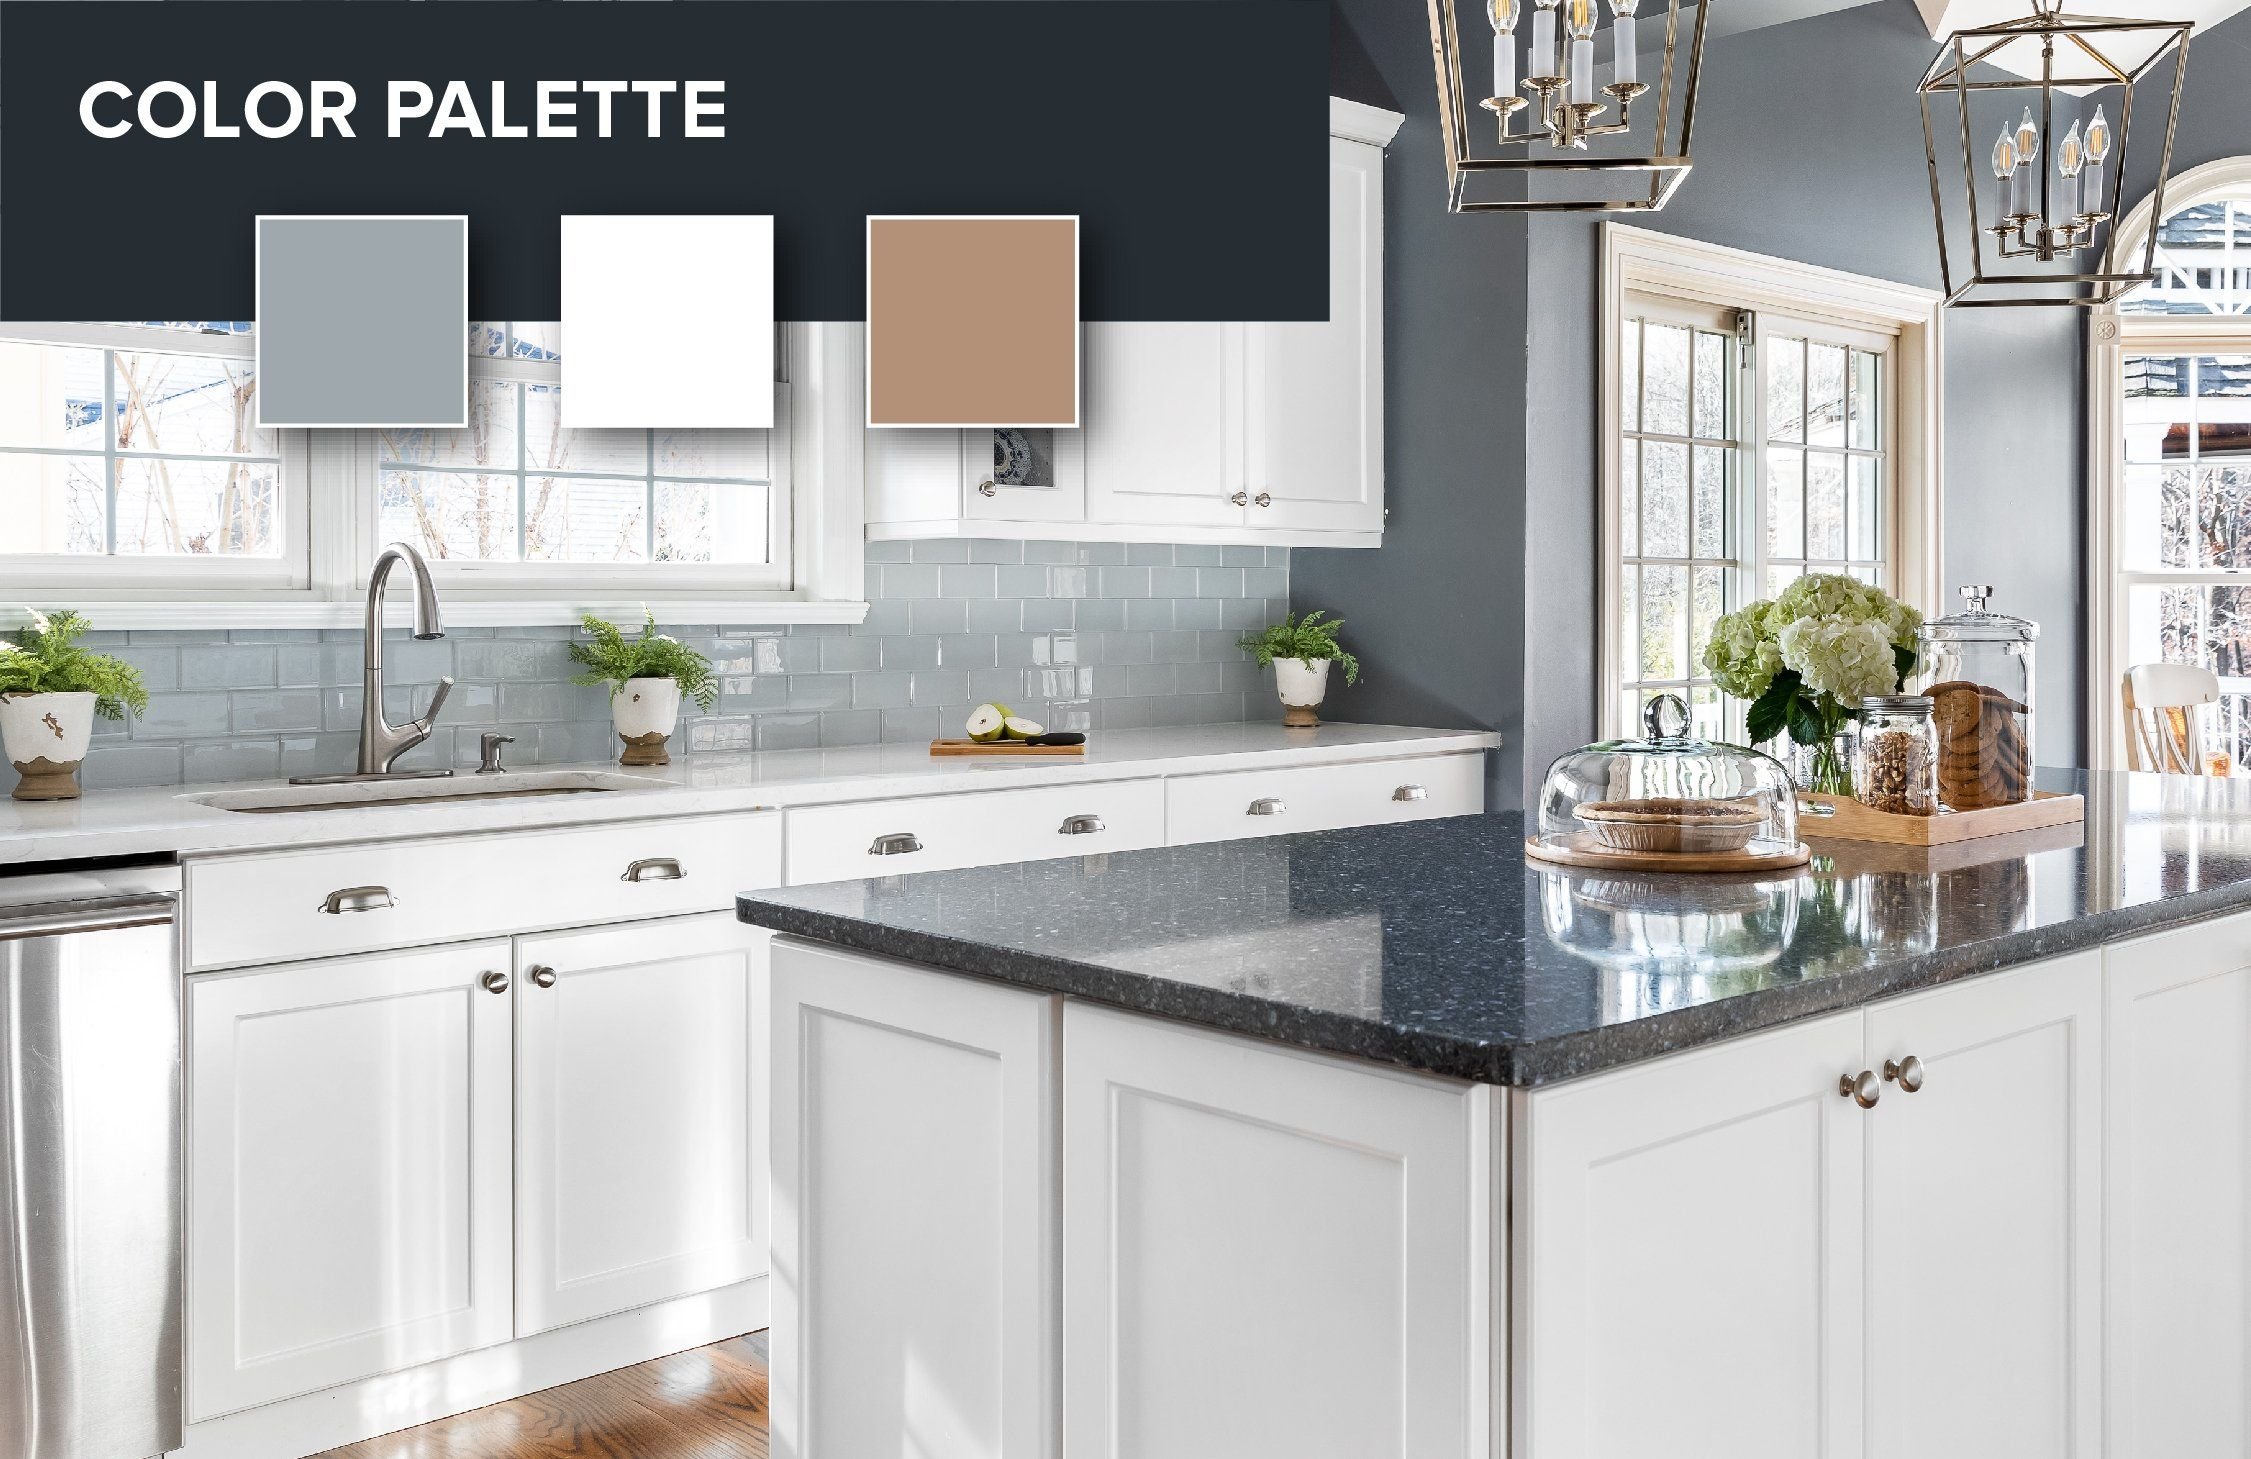 How to Match Your Countertops, Cabinets and Floors in 2020 ...